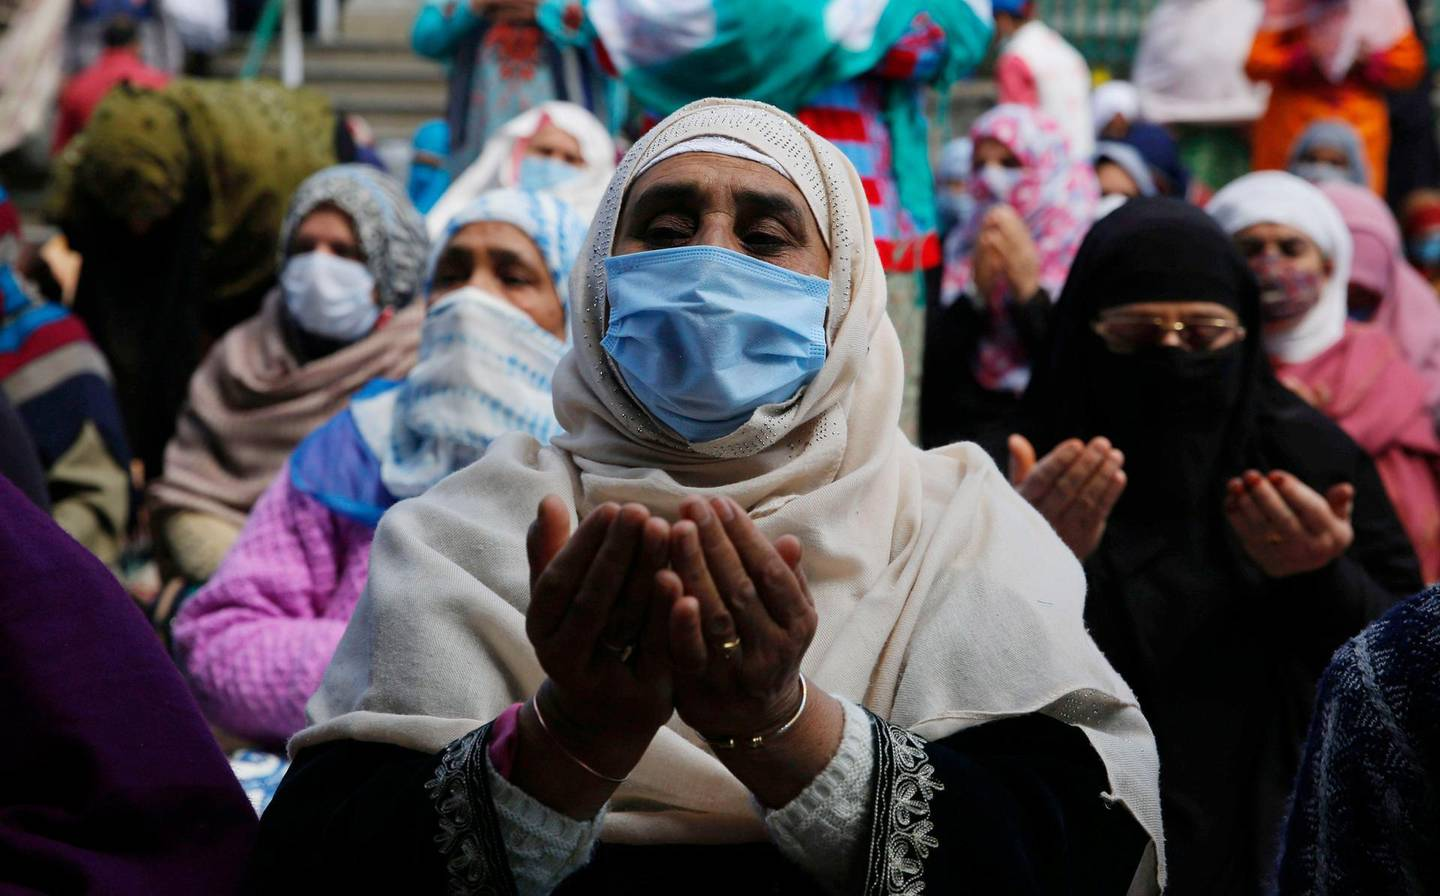 epa09145098 Kashmiri Muslim women pray during holy month of Ramadan outside shrine in Srinagar, the summer capital of Indian Kashmir, 19 April 2021. Muslims around the world celebrate the holy month of Ramadan by praying during the night time and abstaining from eating, drinking, and sexual acts during the period between sunrise and sunset. Ramadan is the ninth month in the Islamic calendar and it is believed that the revelation of the first verse in Koran was during its last 10 nights.  EPA/FAROOQ KHAN